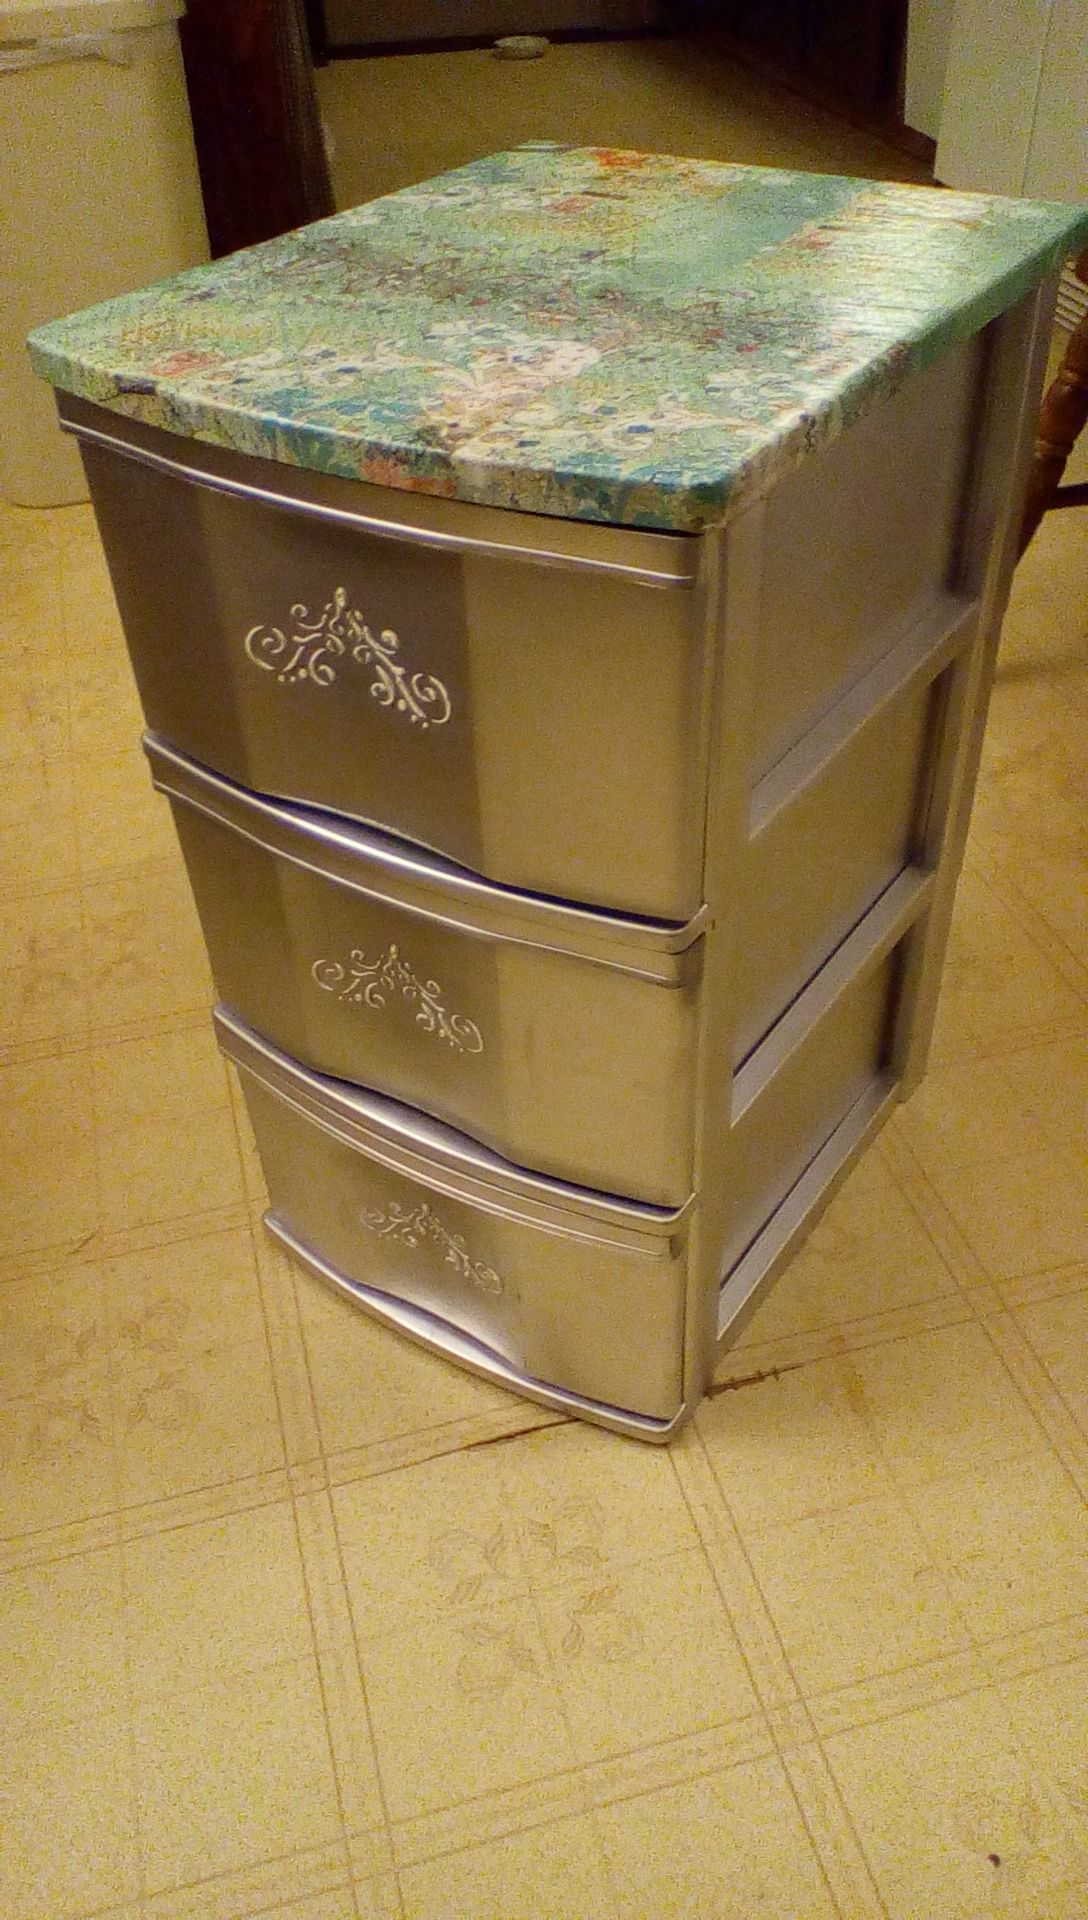 Plastic Sterlite Drawers With Decoupage Top Silver Paint And Stencil On Front Definitely Lo Plastic Storage Drawers Plastic Drawer Makeover Painting Plastic